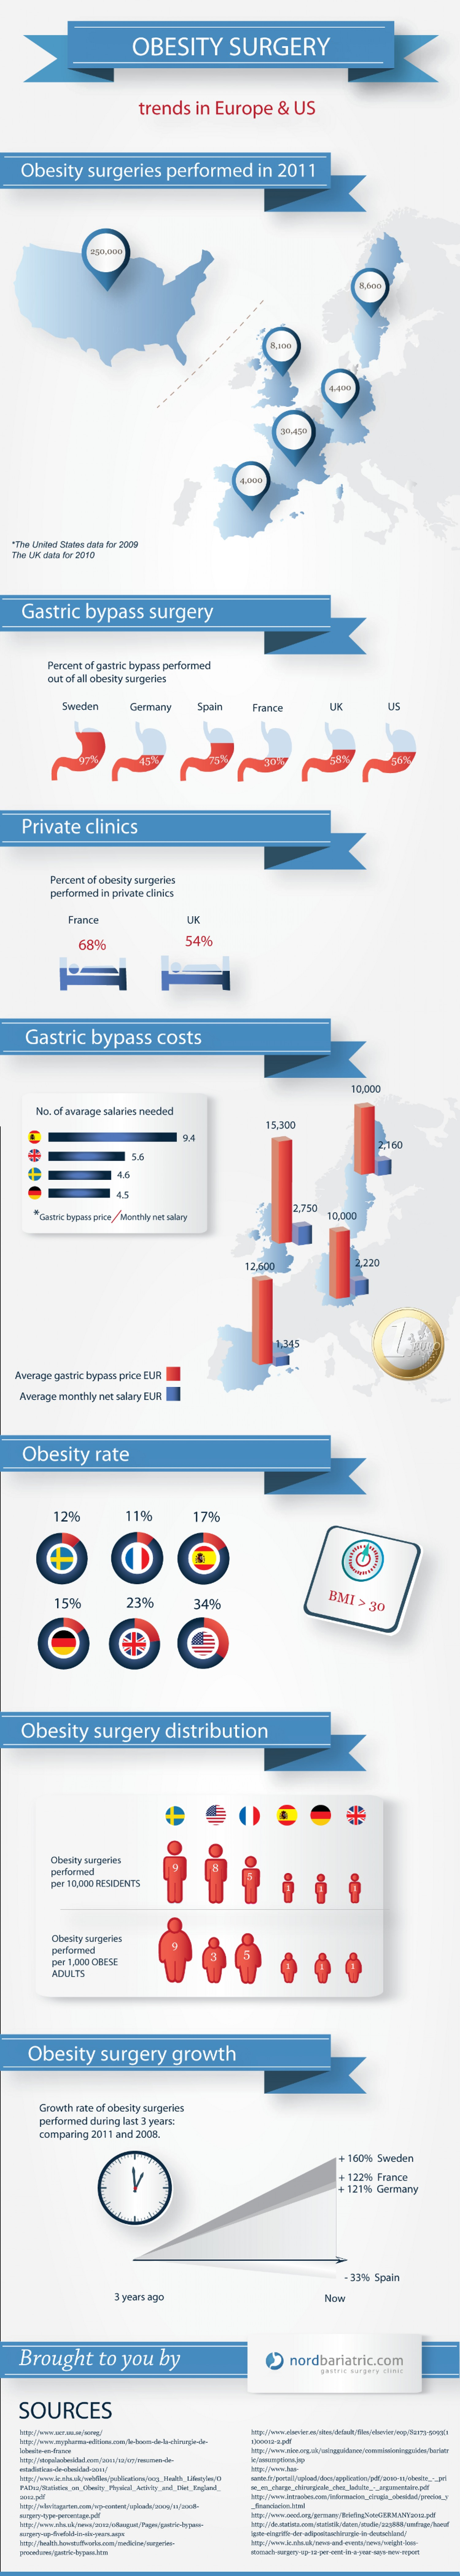 6. Obesity Surgery Trends in Europe and the US